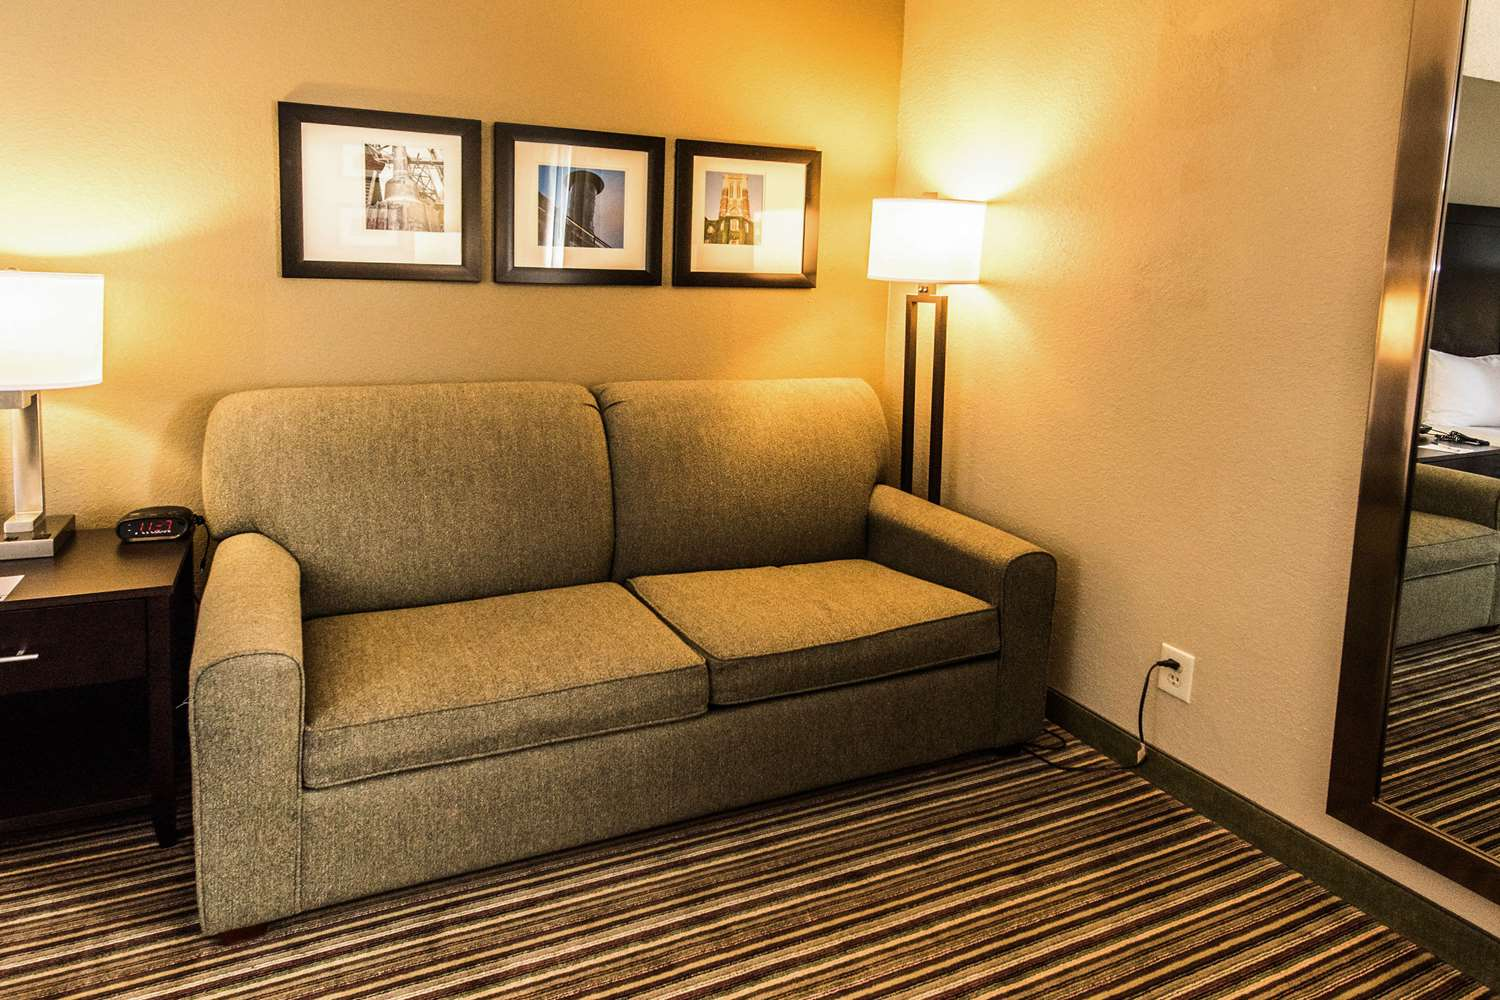 Comfort Inn West Allentown, PA - See Discounts